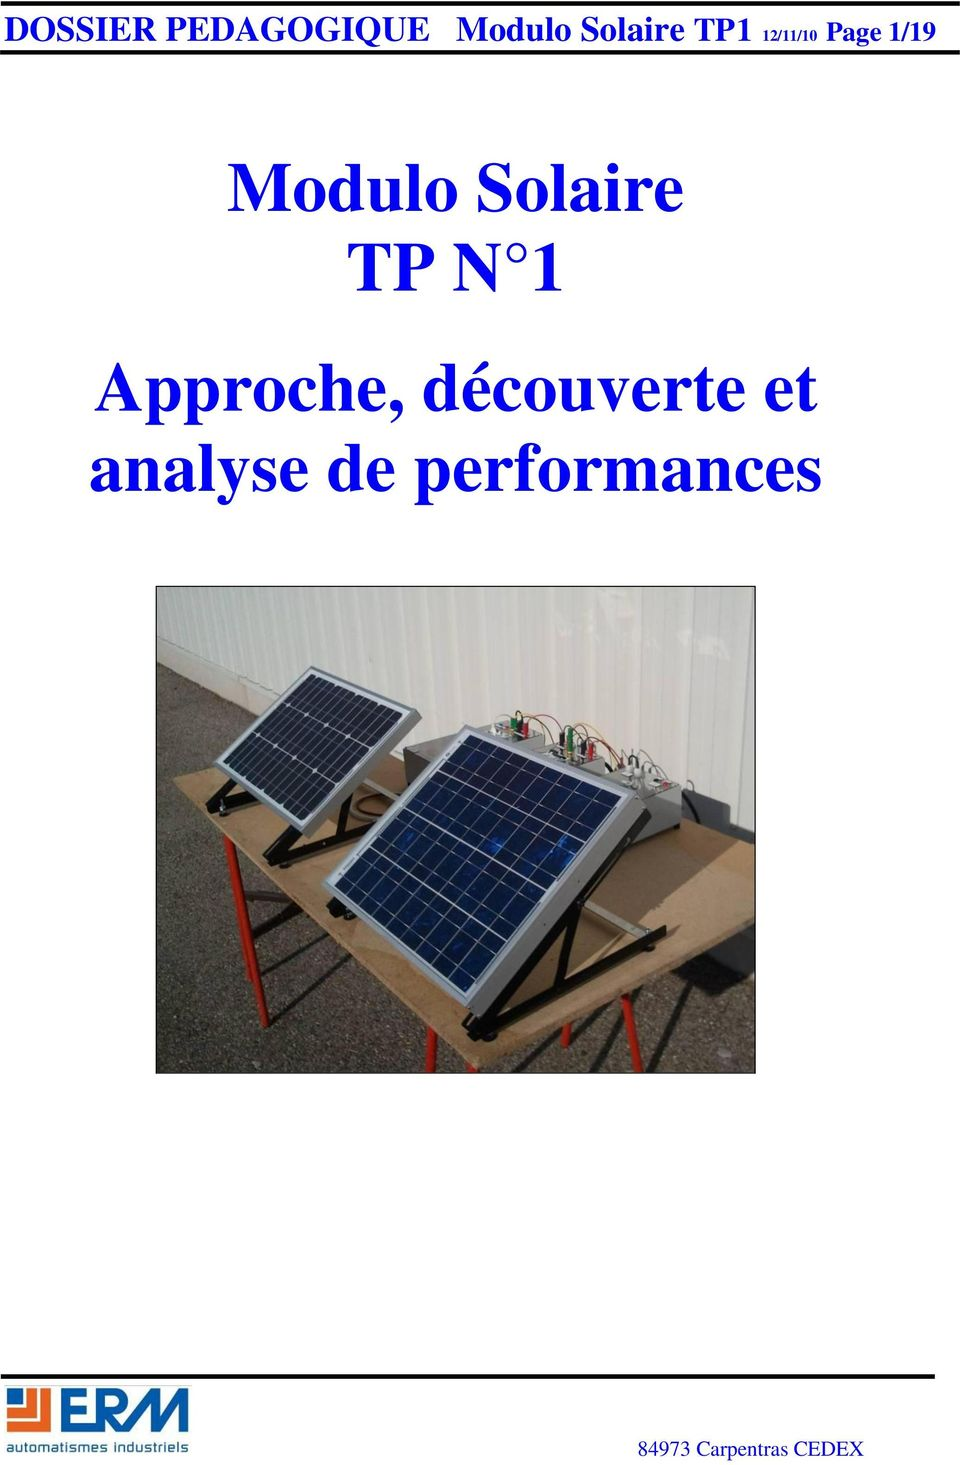 Modulo Solaire TP N 1 Approche,